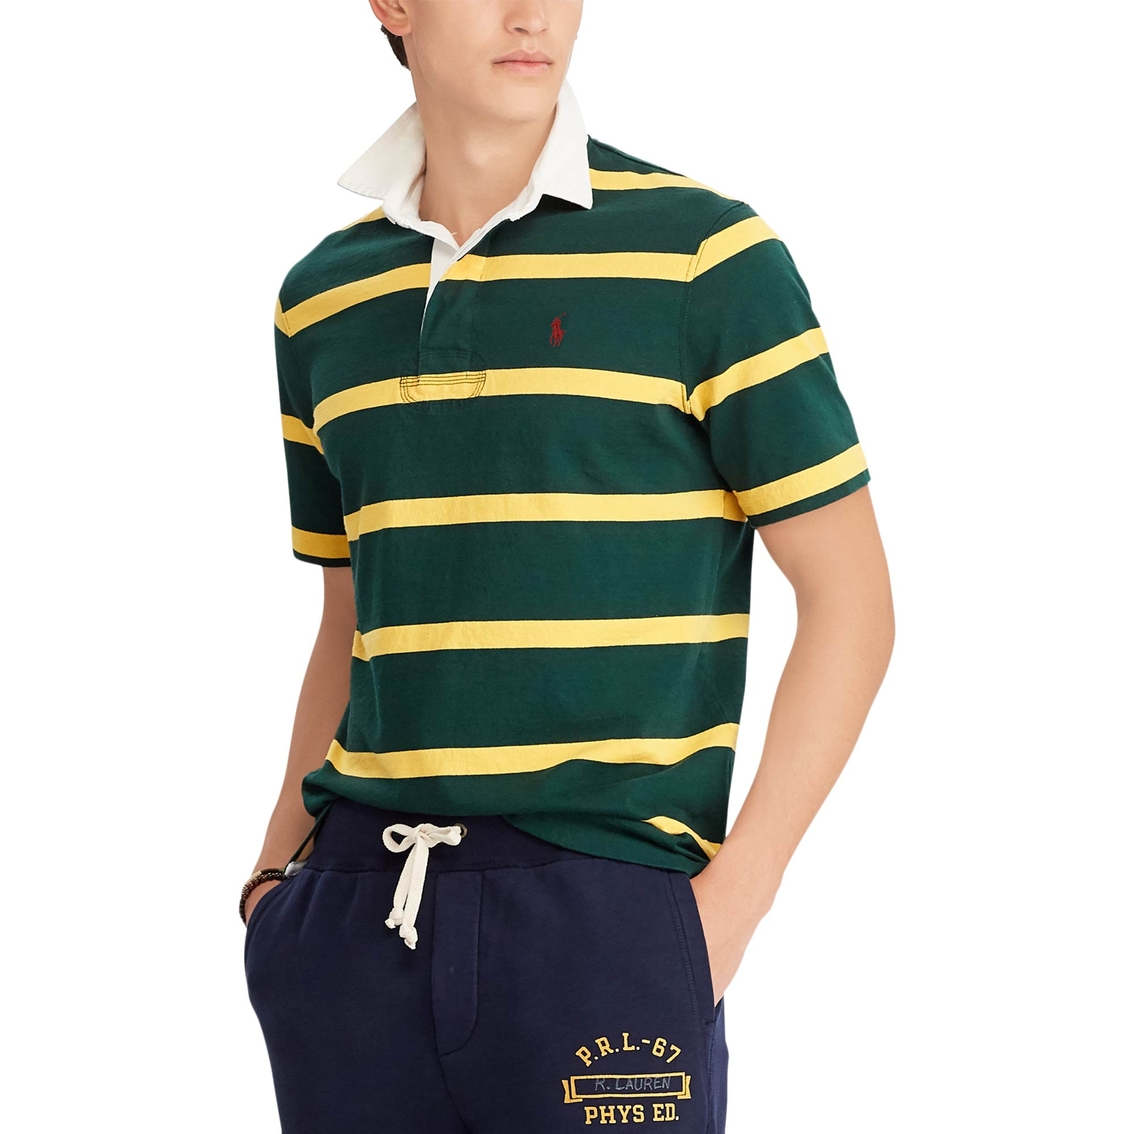 e7eeecb474a Polo Ralph Lauren The Iconic Rugby Shirt | Polos | Father's Day Shop ...